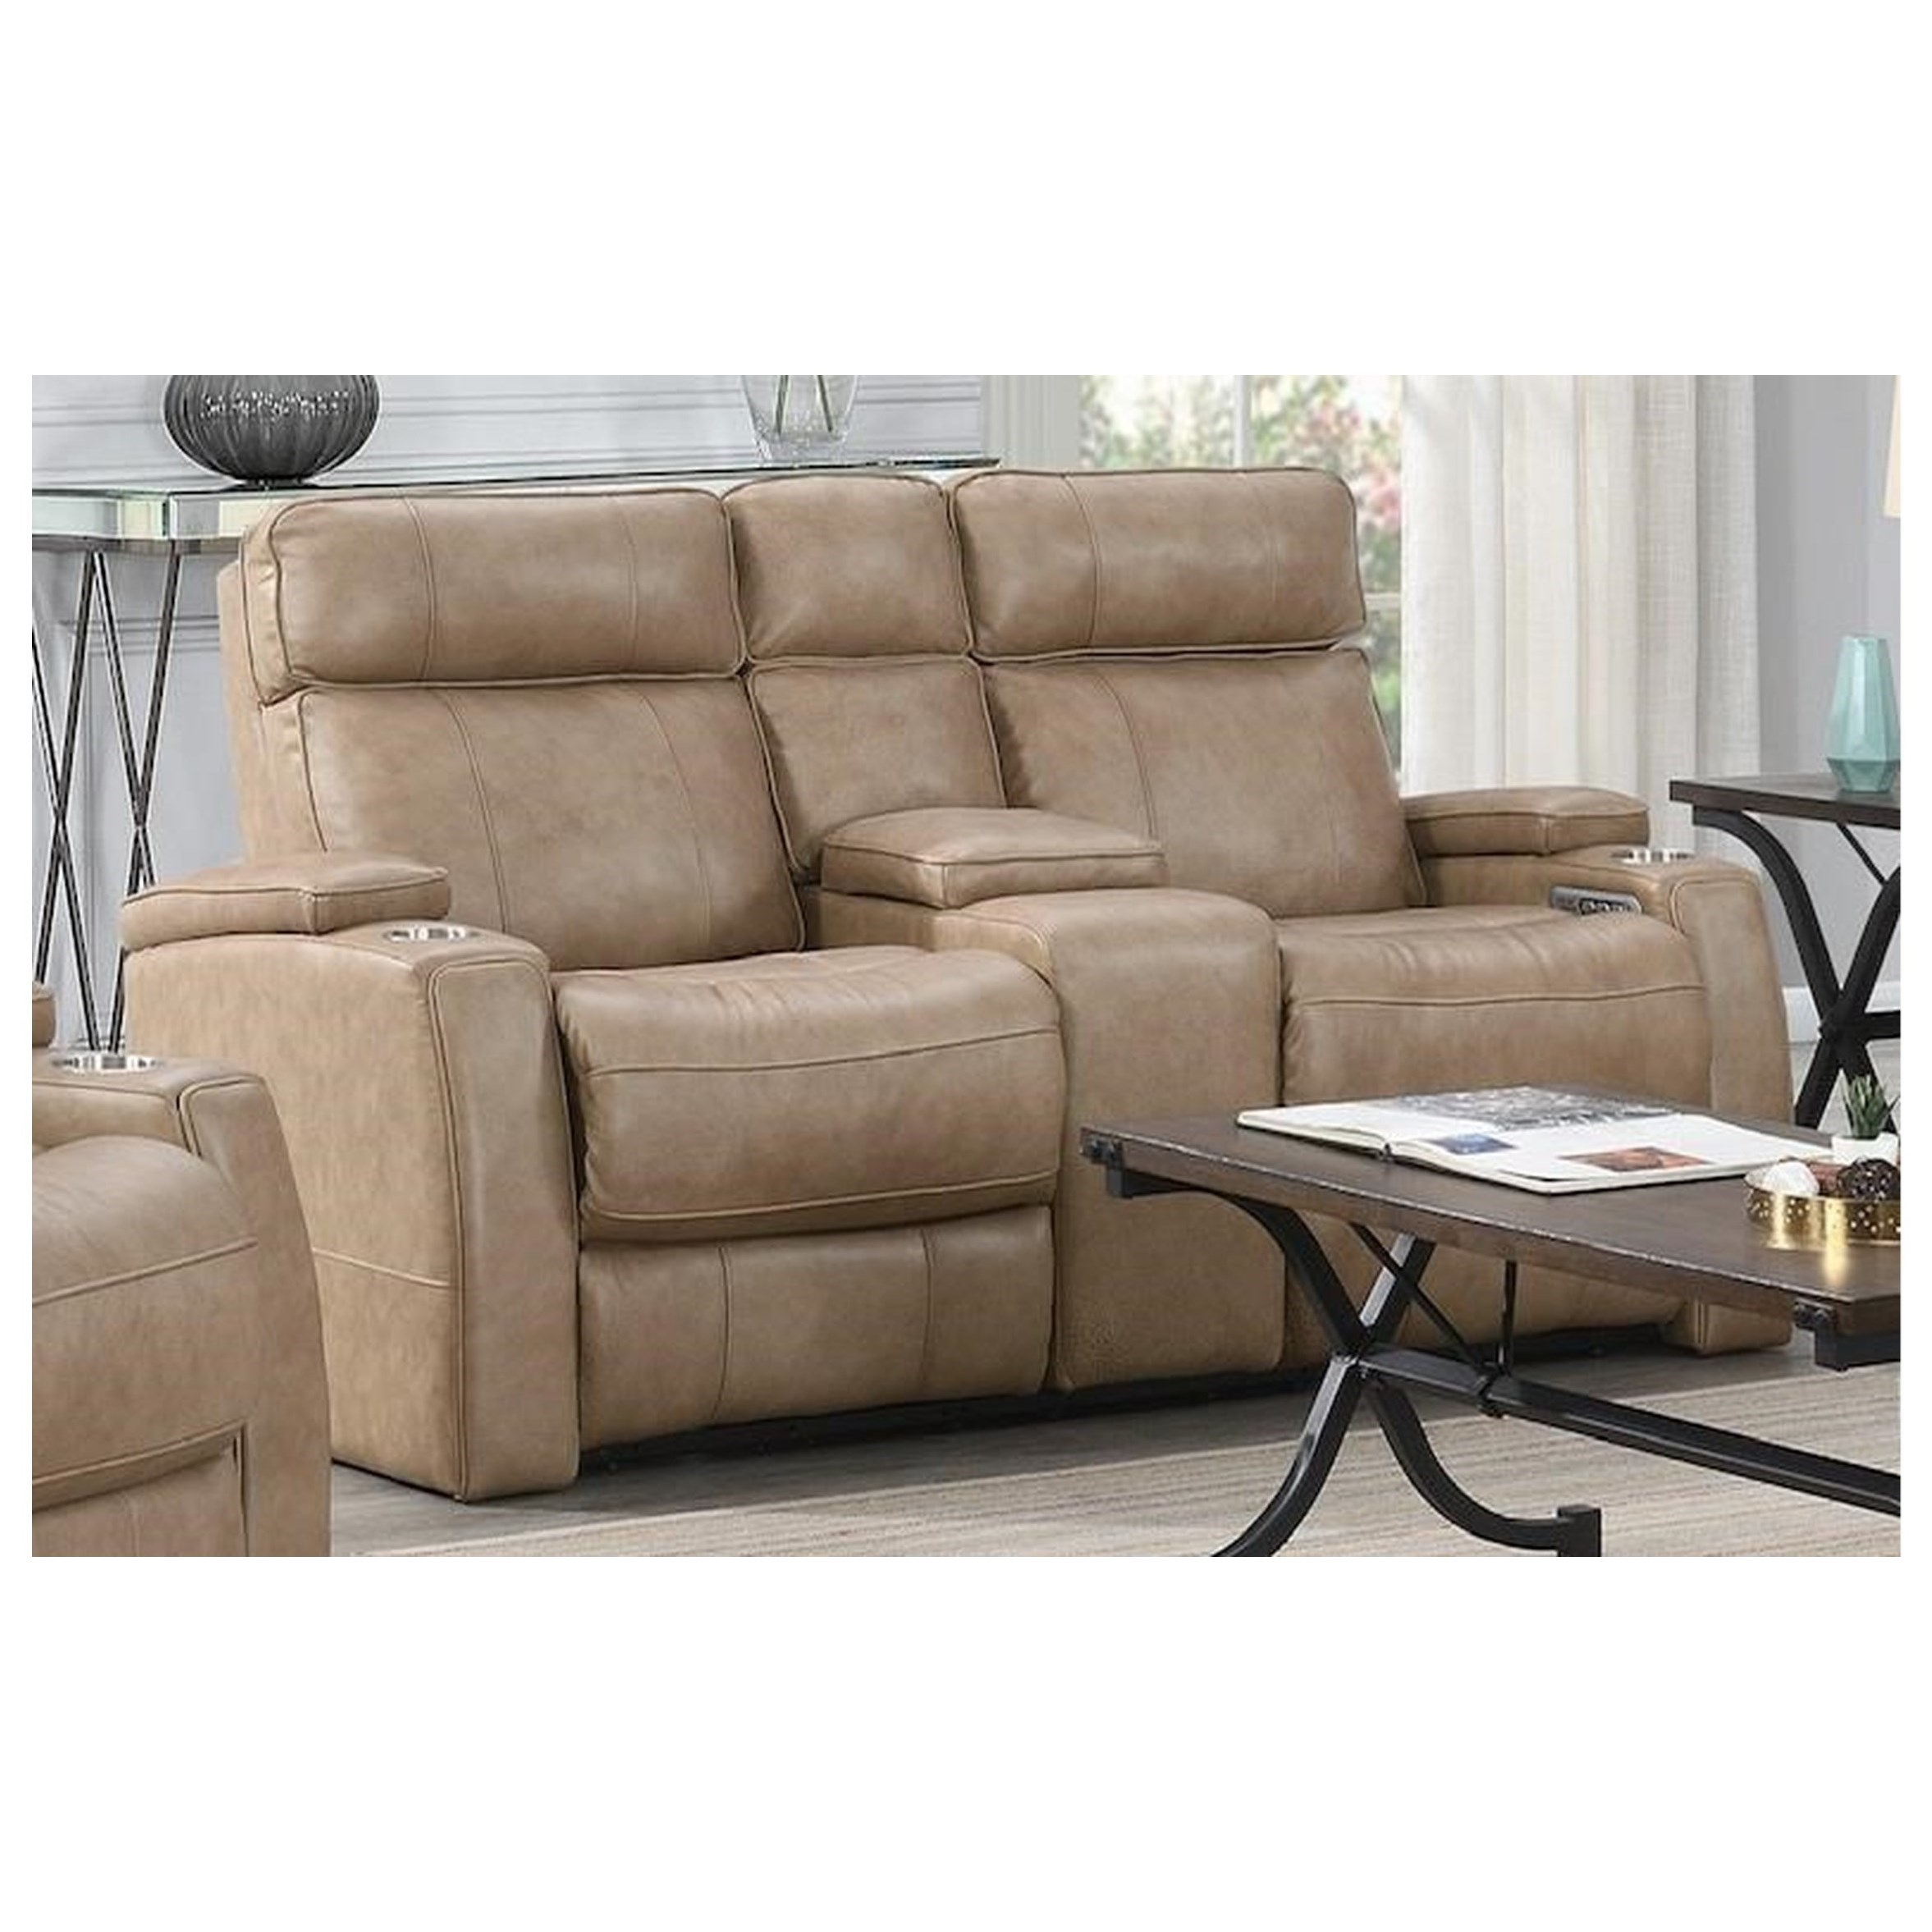 Sosa Power Reclining Console by Highlife Furniture at Crowley Furniture & Mattress